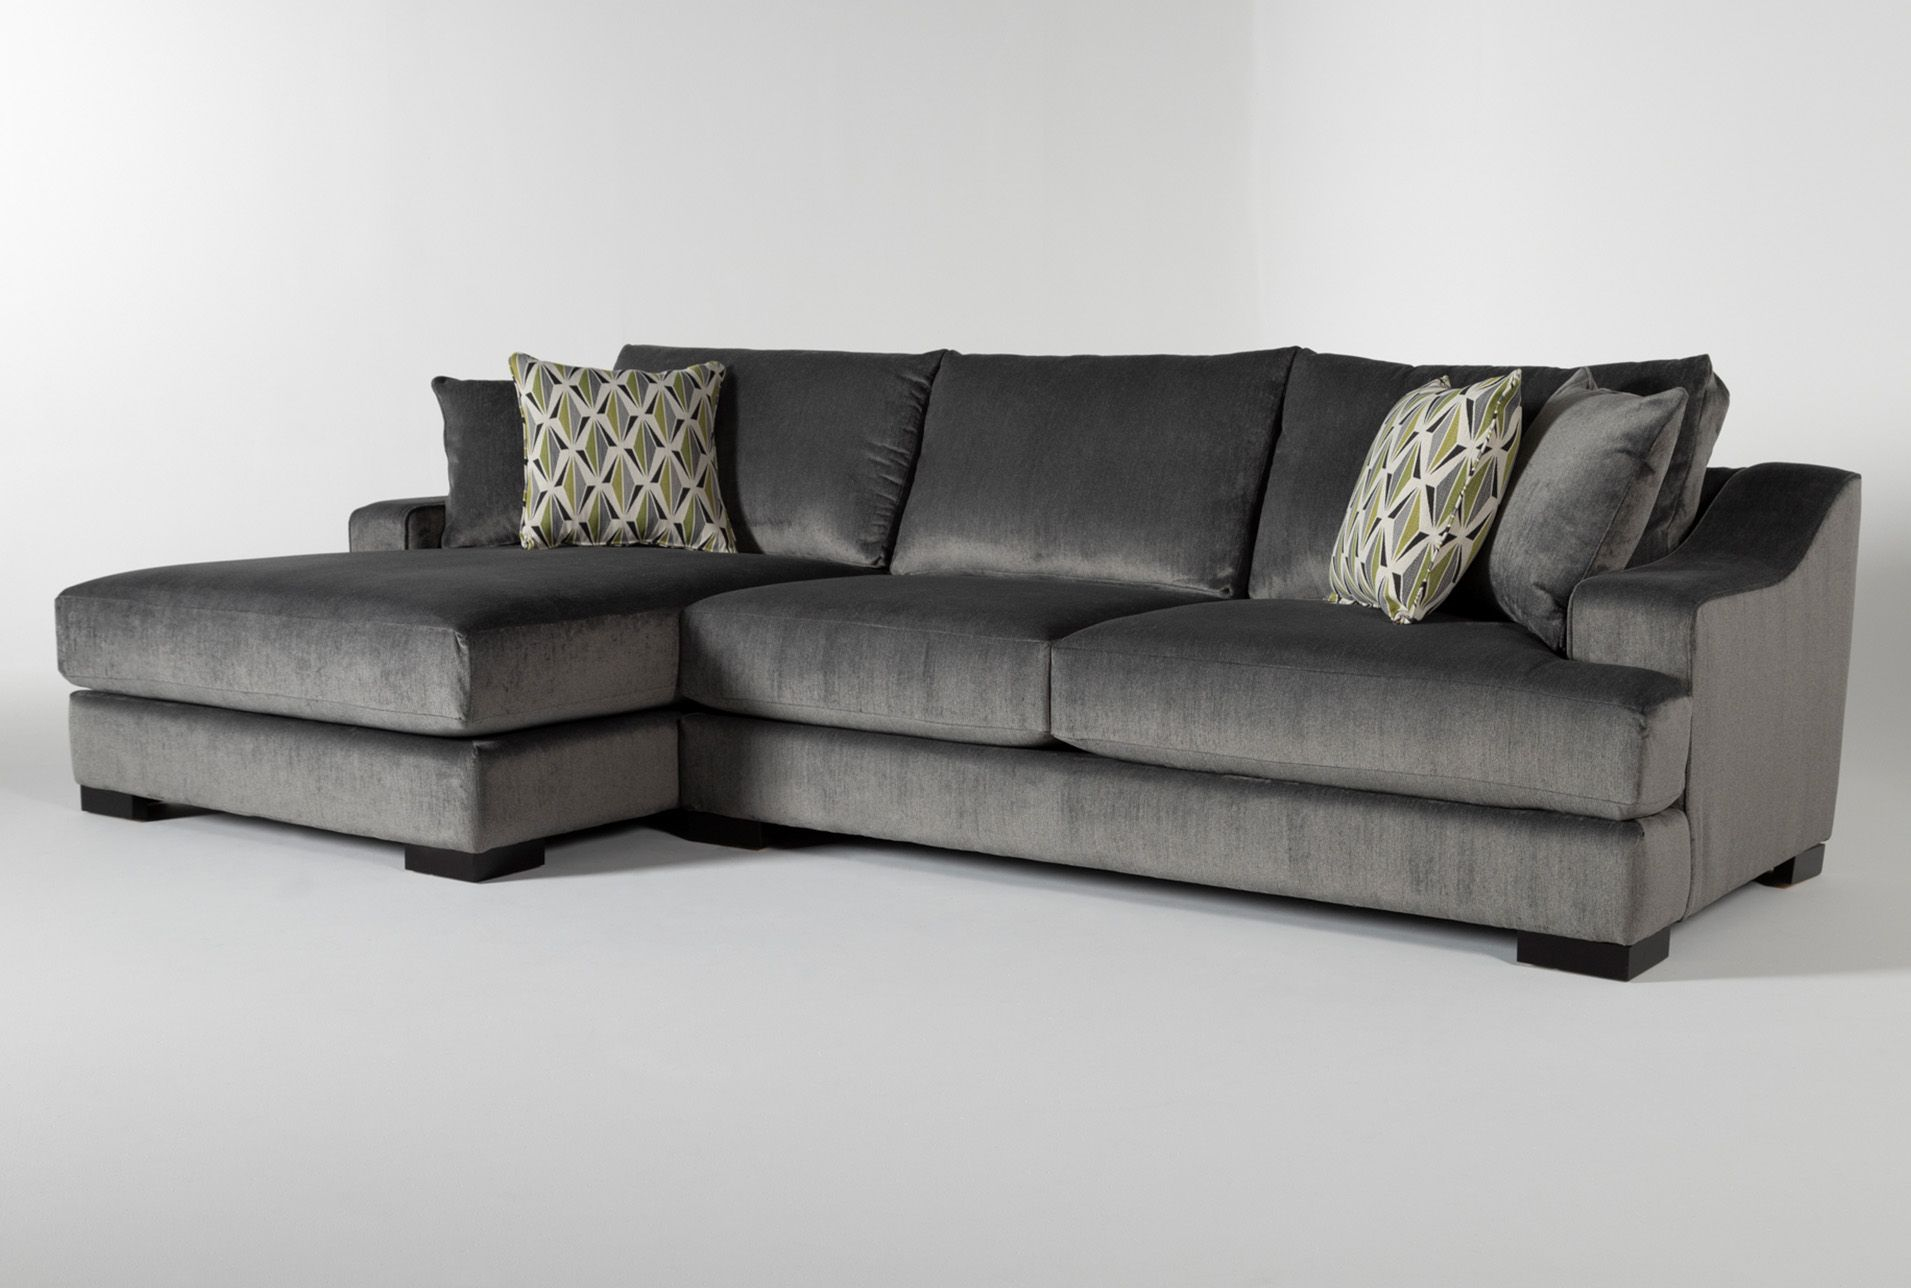 Lodge Charcoal 2 Piece 139 Sectional With Left Arm Facing Chaise Sectional Chaise Double Chaise Sofa